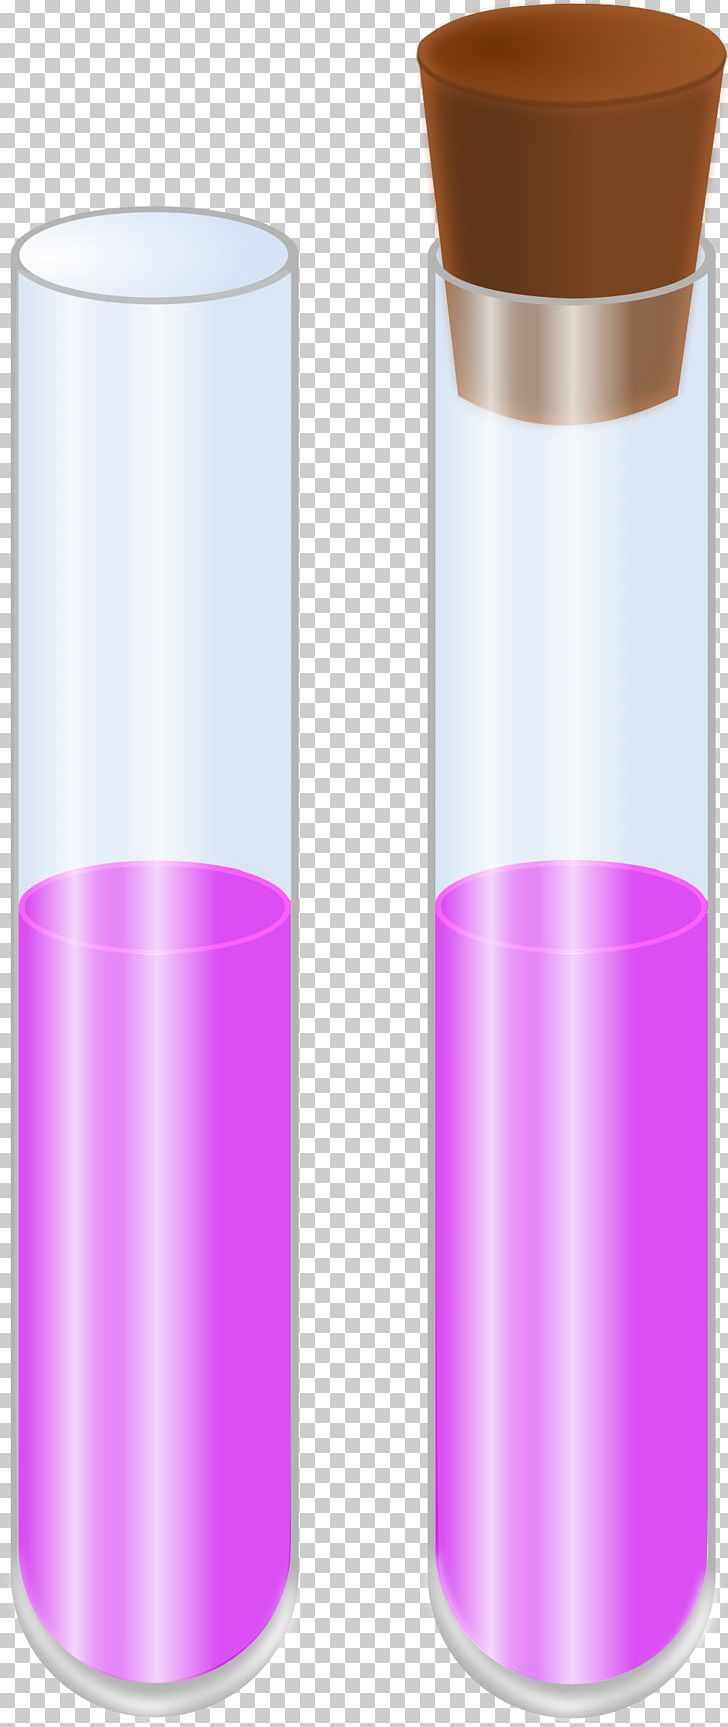 Test Tubes Laboratory Glass Tube Test Tube Rack PNG, Clipart, Beaker, Computer Icons, Cylinder, Erlenmeyer Flask, Glass Free PNG Download